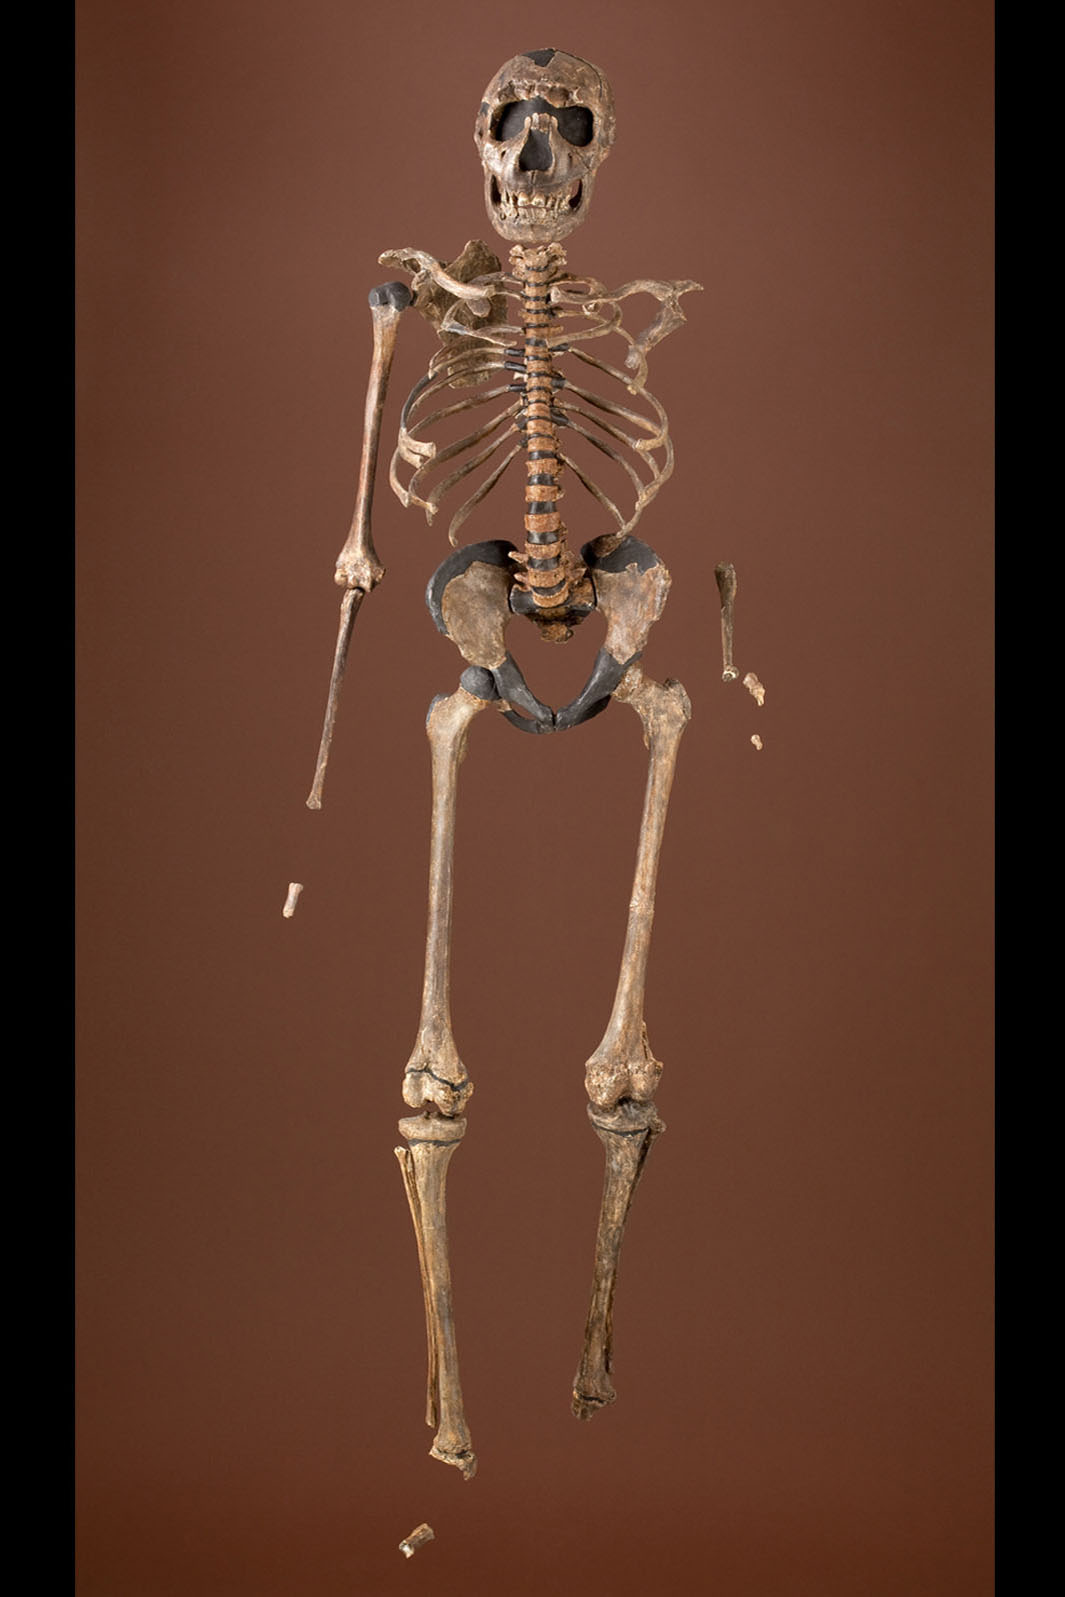 Bodies | The Smithsonian Institution's Human Origins Program